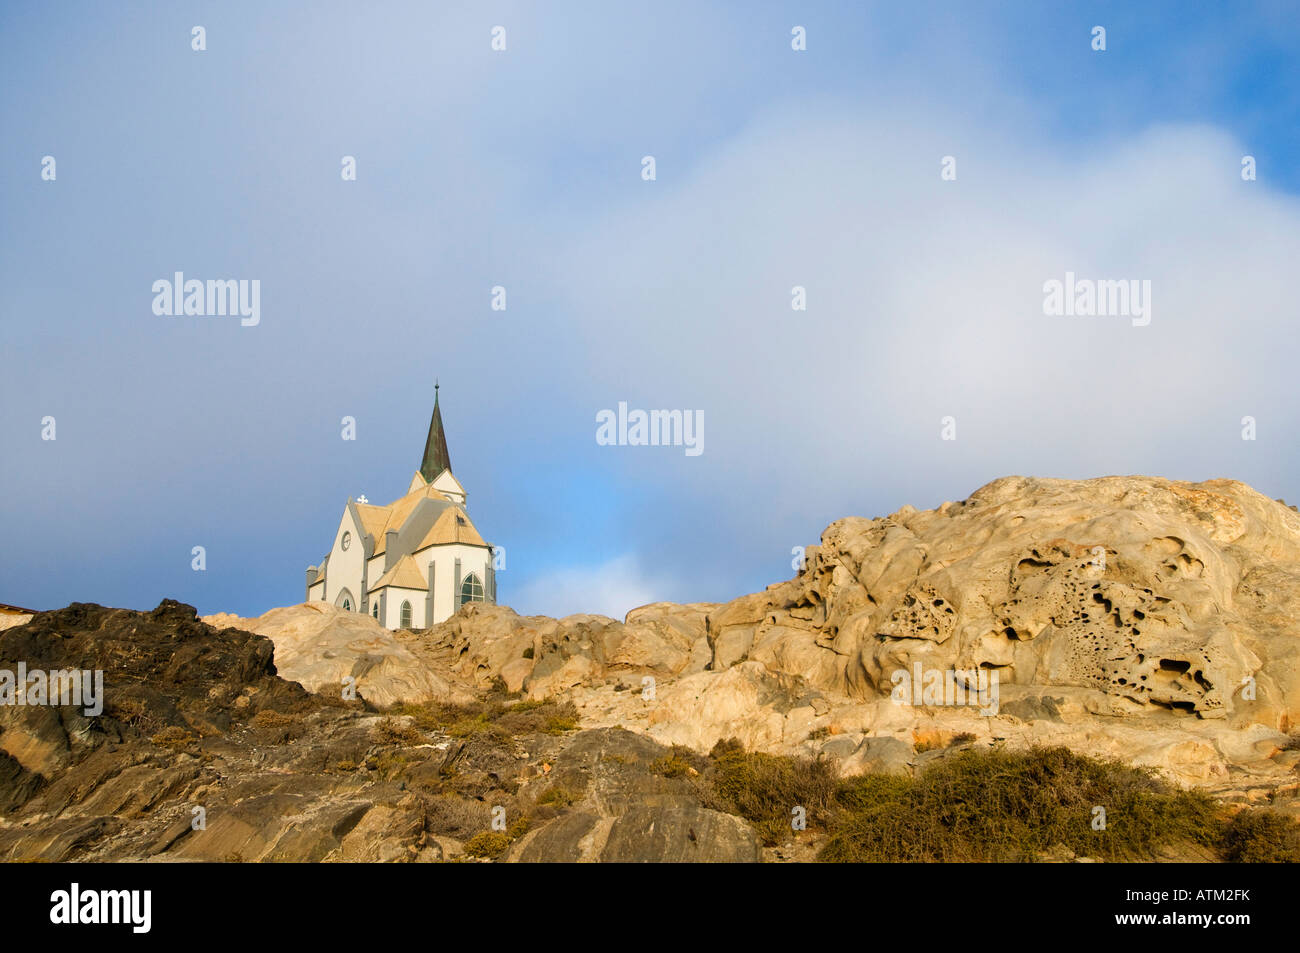 Felsenkirche or Church of the Rock looks over Luderitz Namibia founded as a harbour town - Stock Image